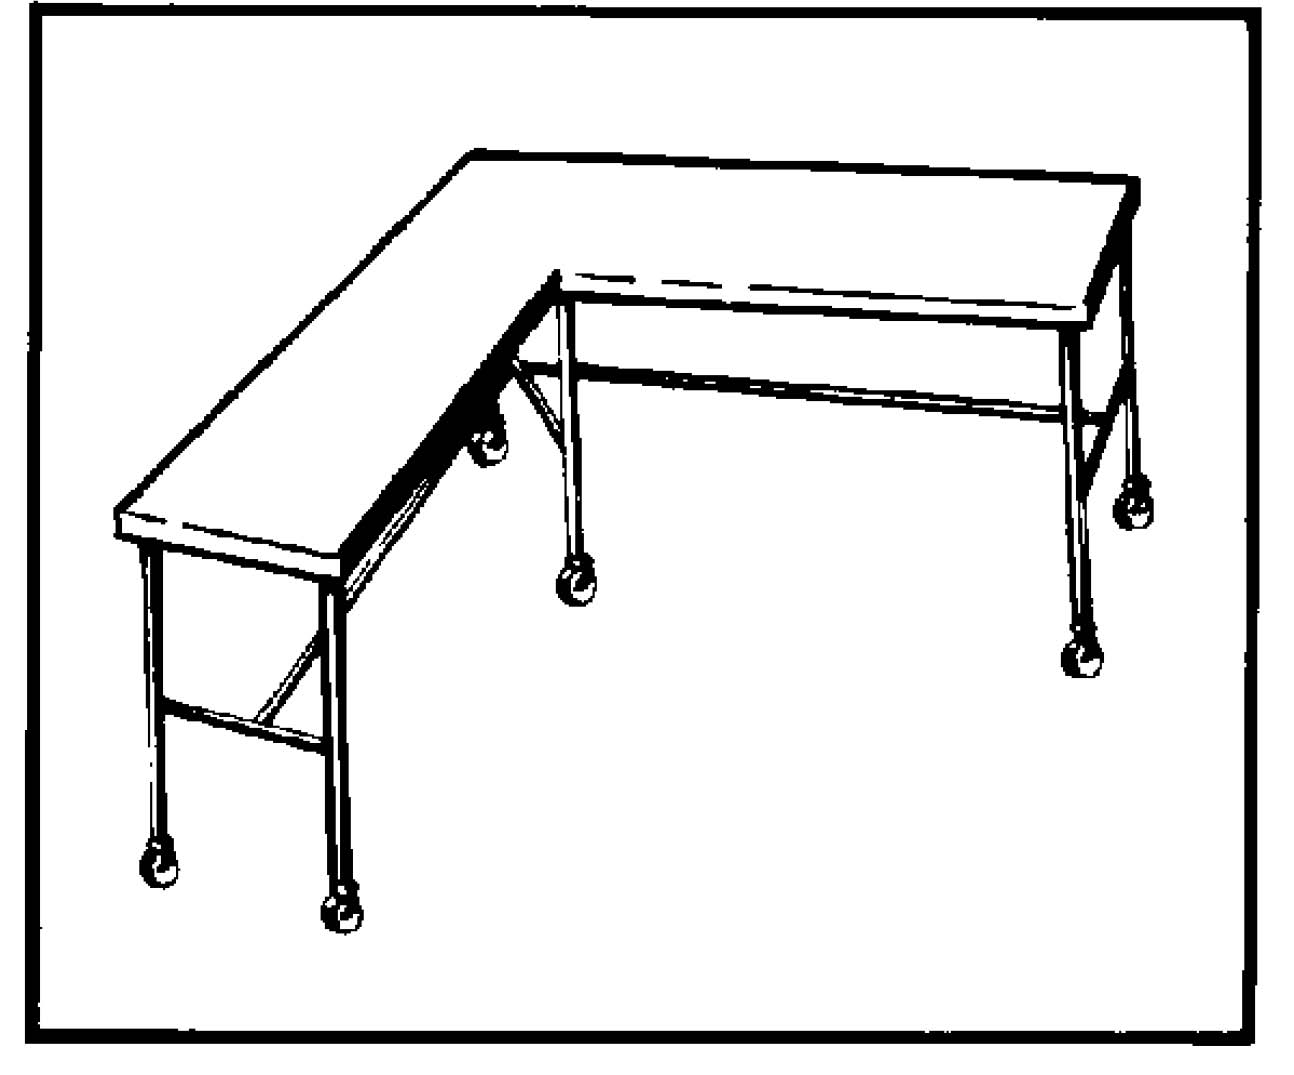 1 13 Surgical Instrument Tables